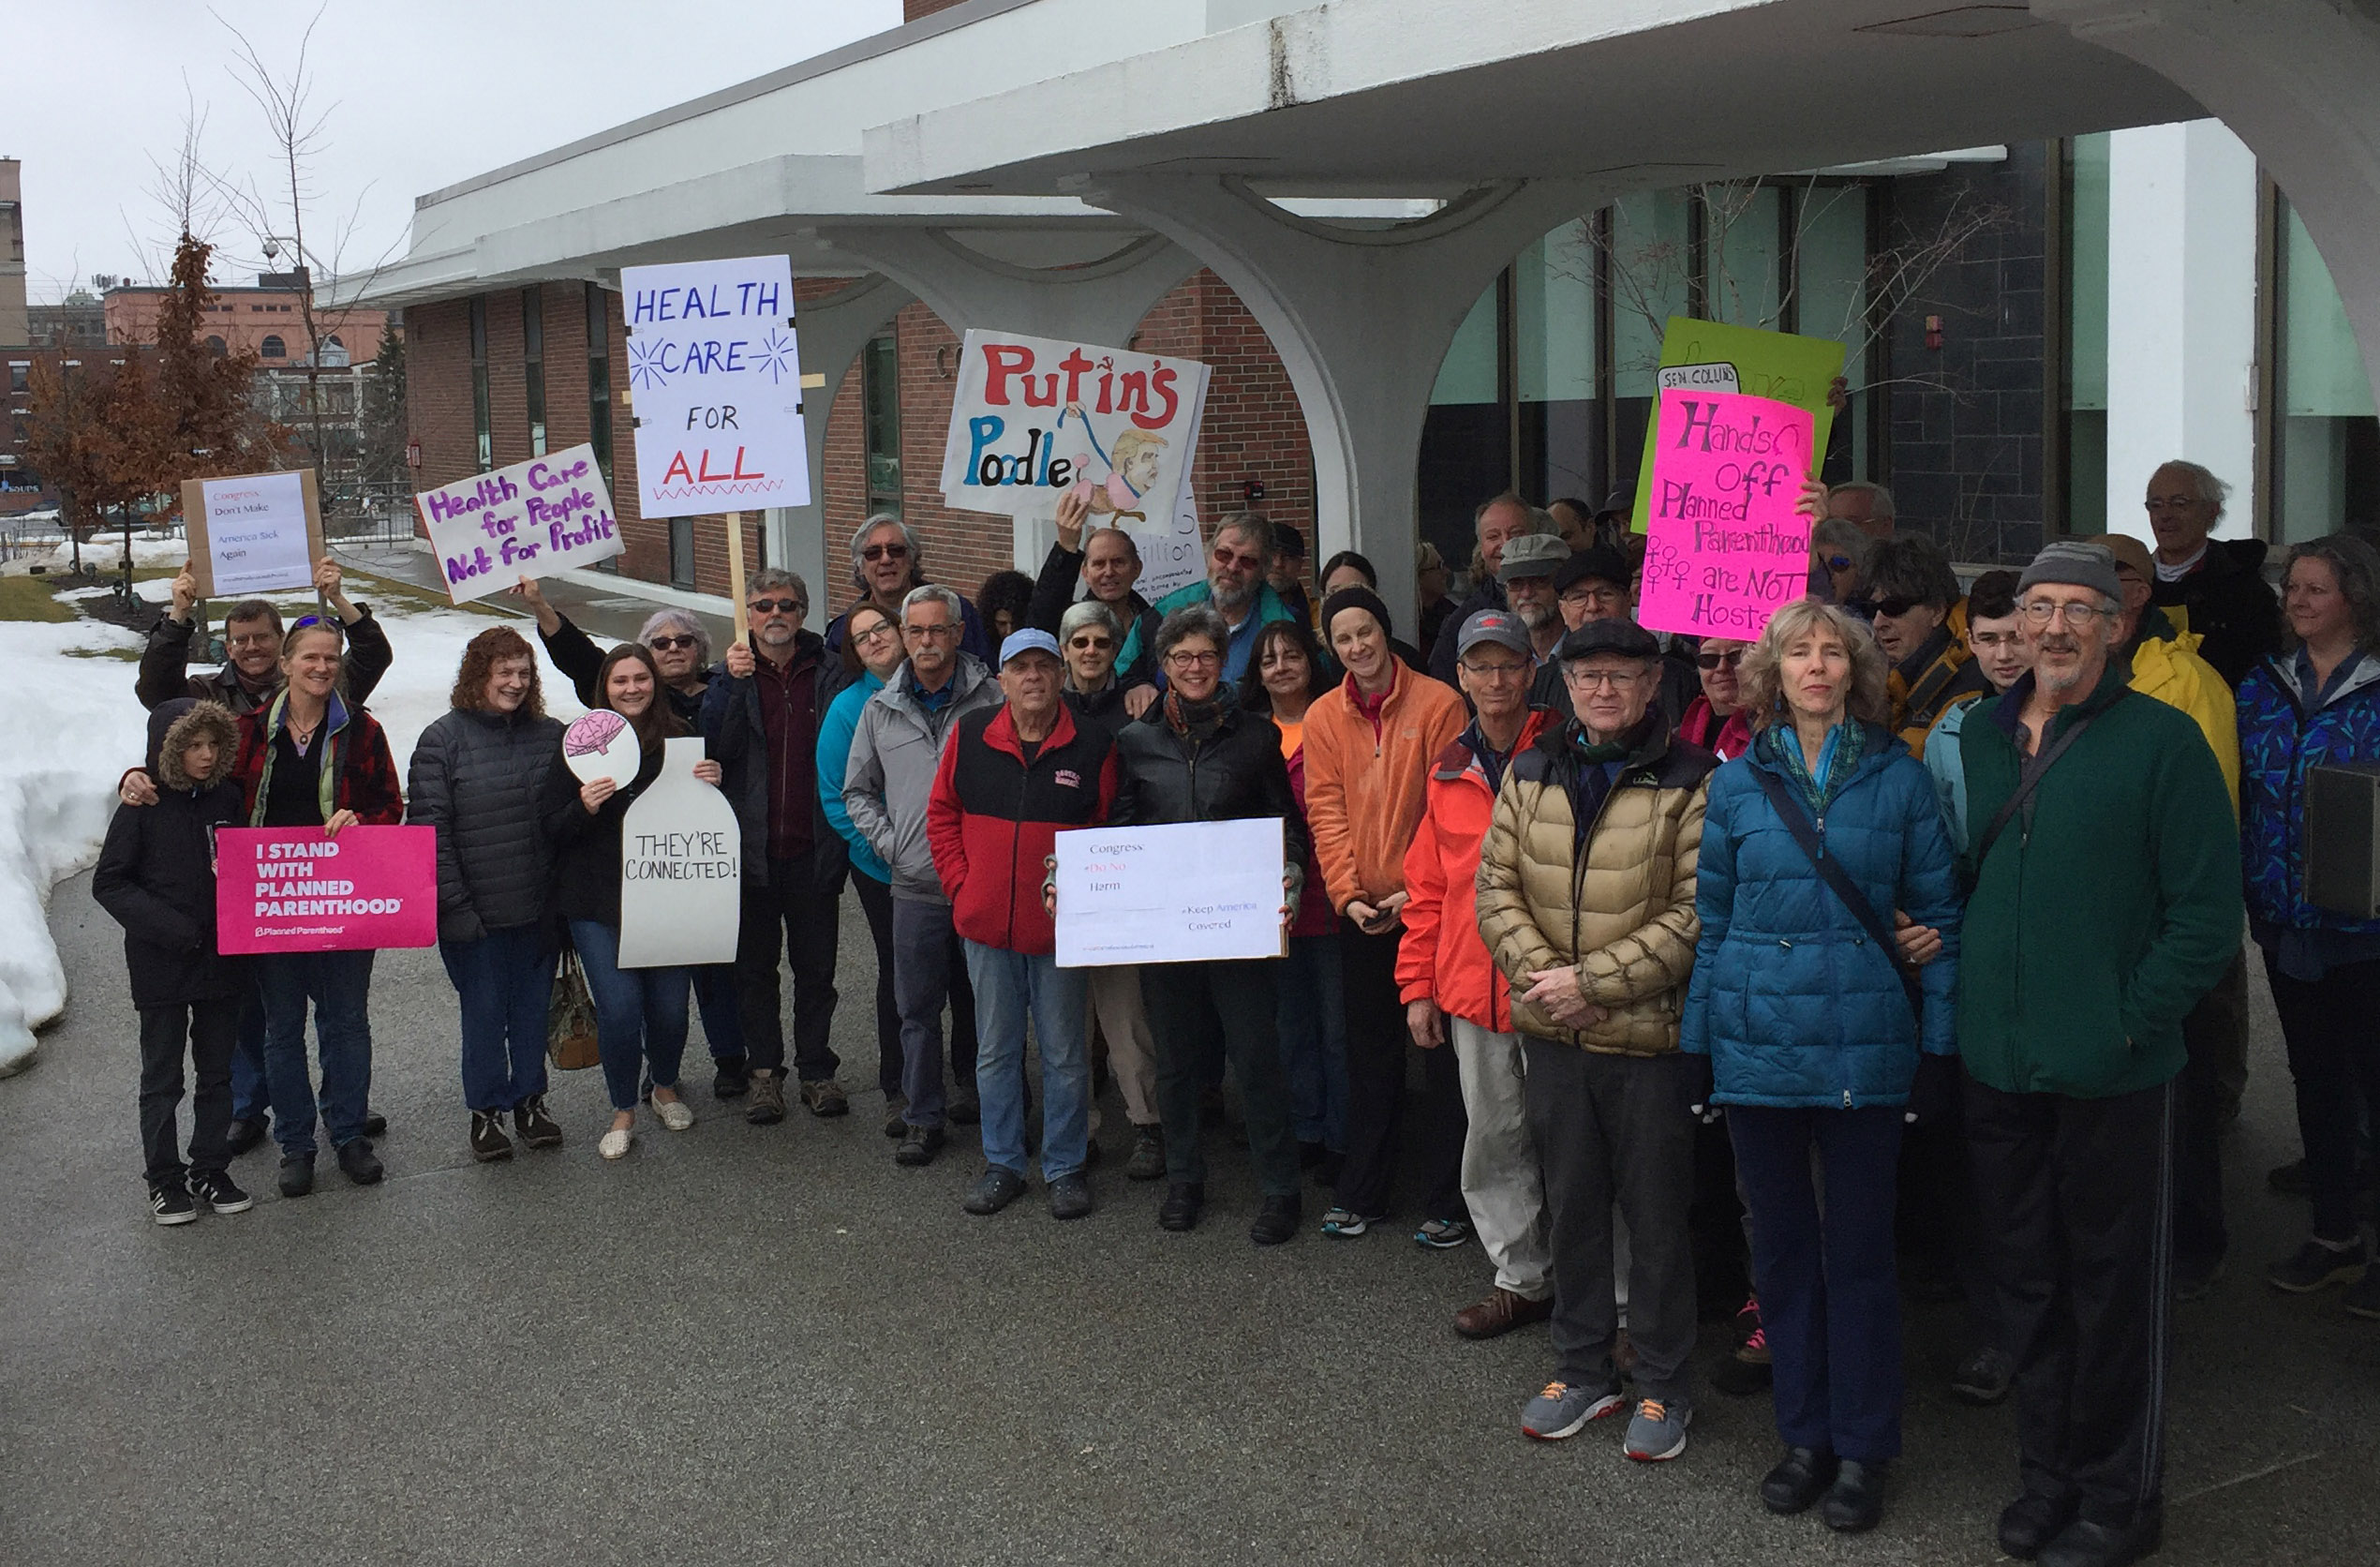 Doctors picket Sen. Collins' office in support of Affordable Care Act